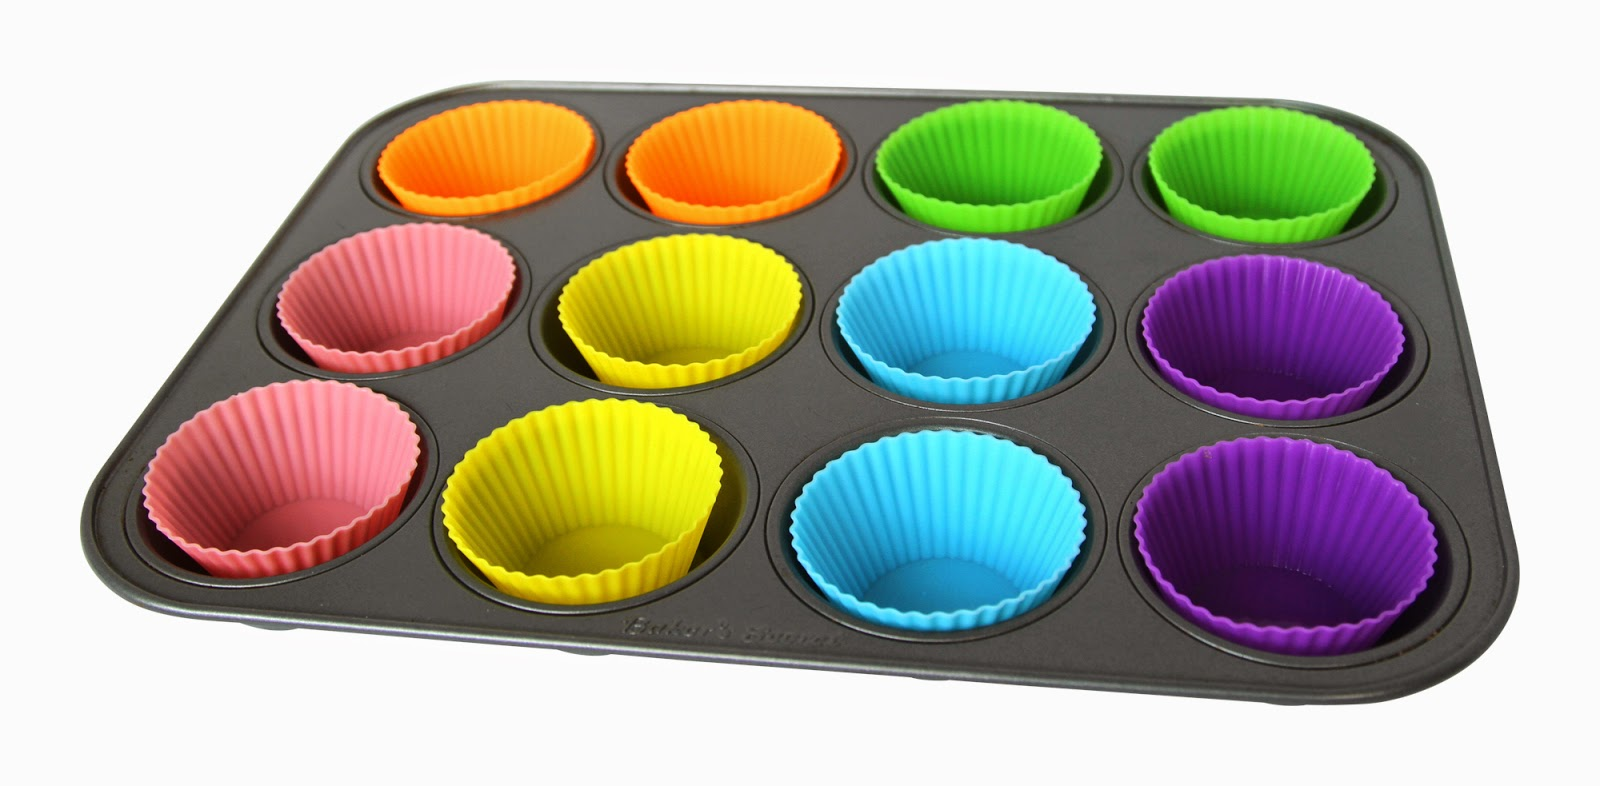 Silicone Baking Cups - 24 Pack - 6 Vibrant Colors